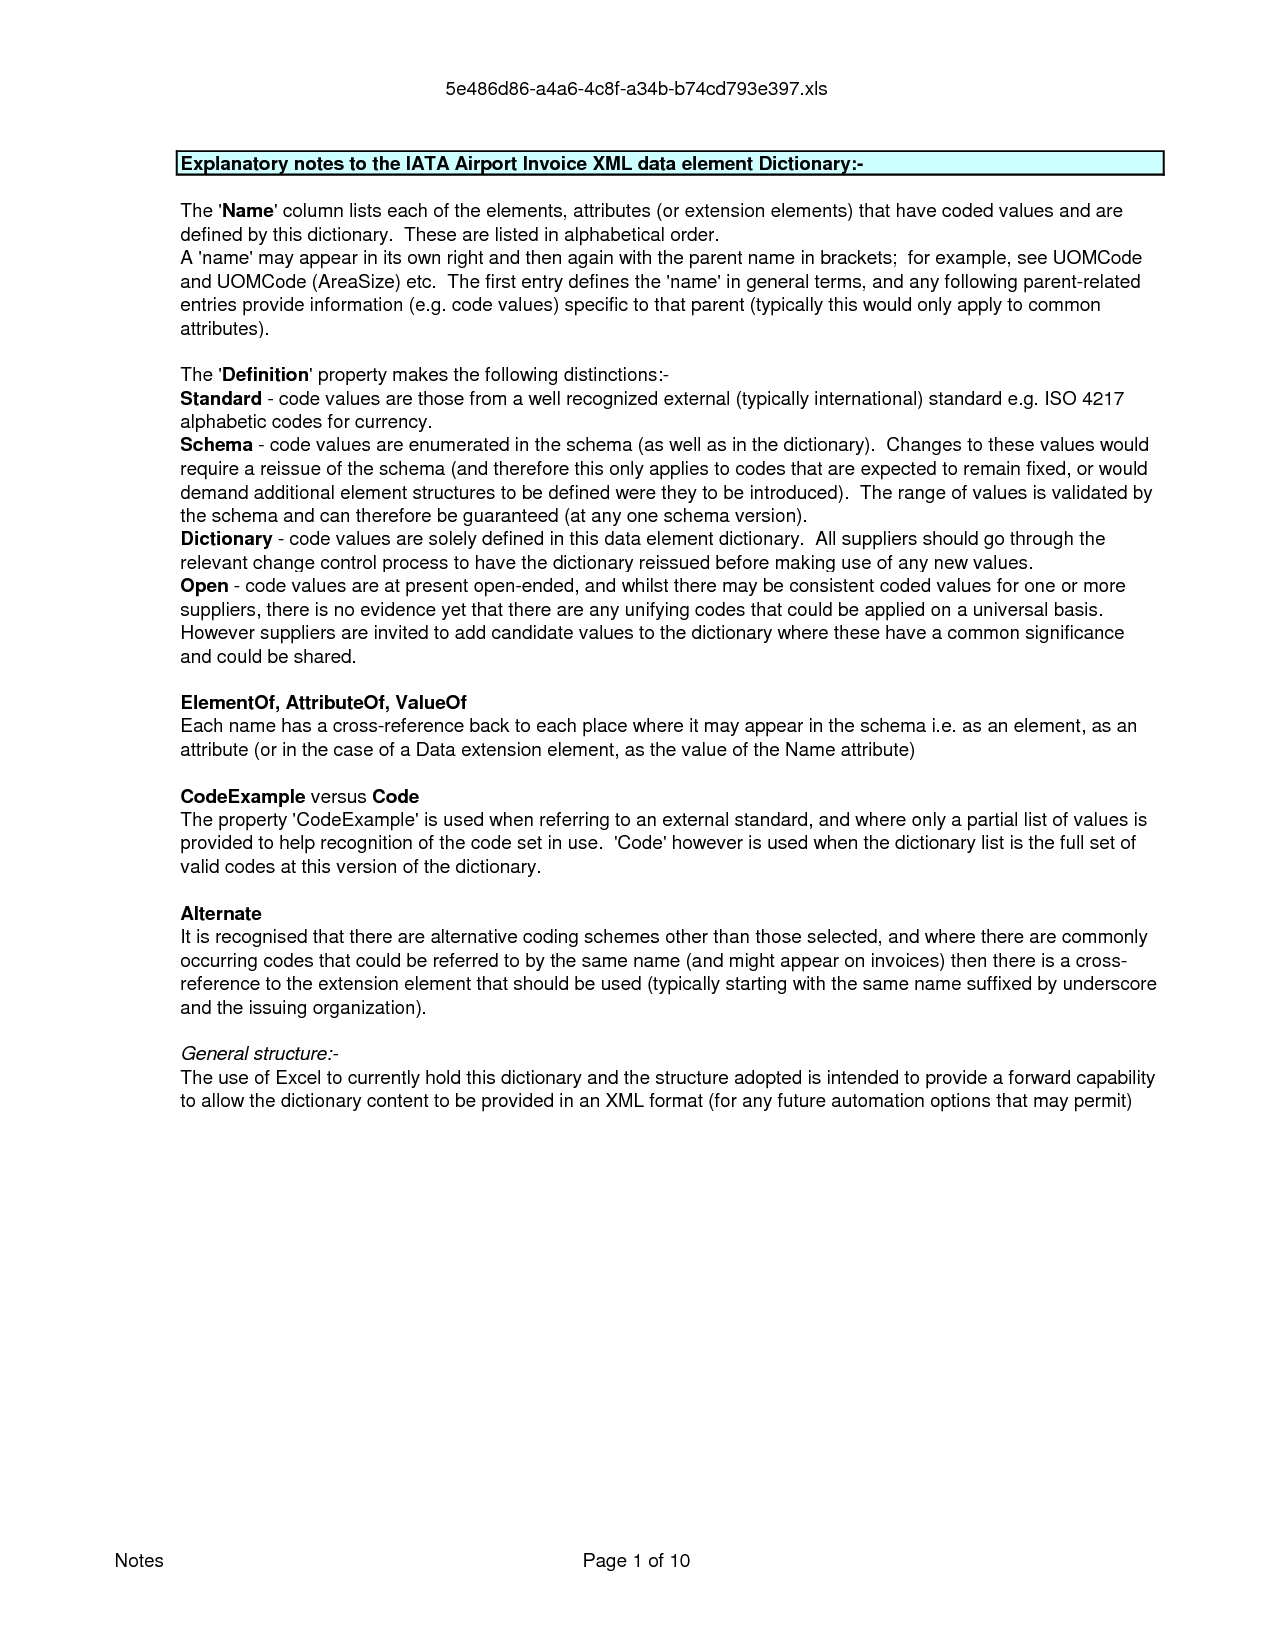 commercial invoice definitionwwwmahtaweb wwwmahtaweb define commercial invoice